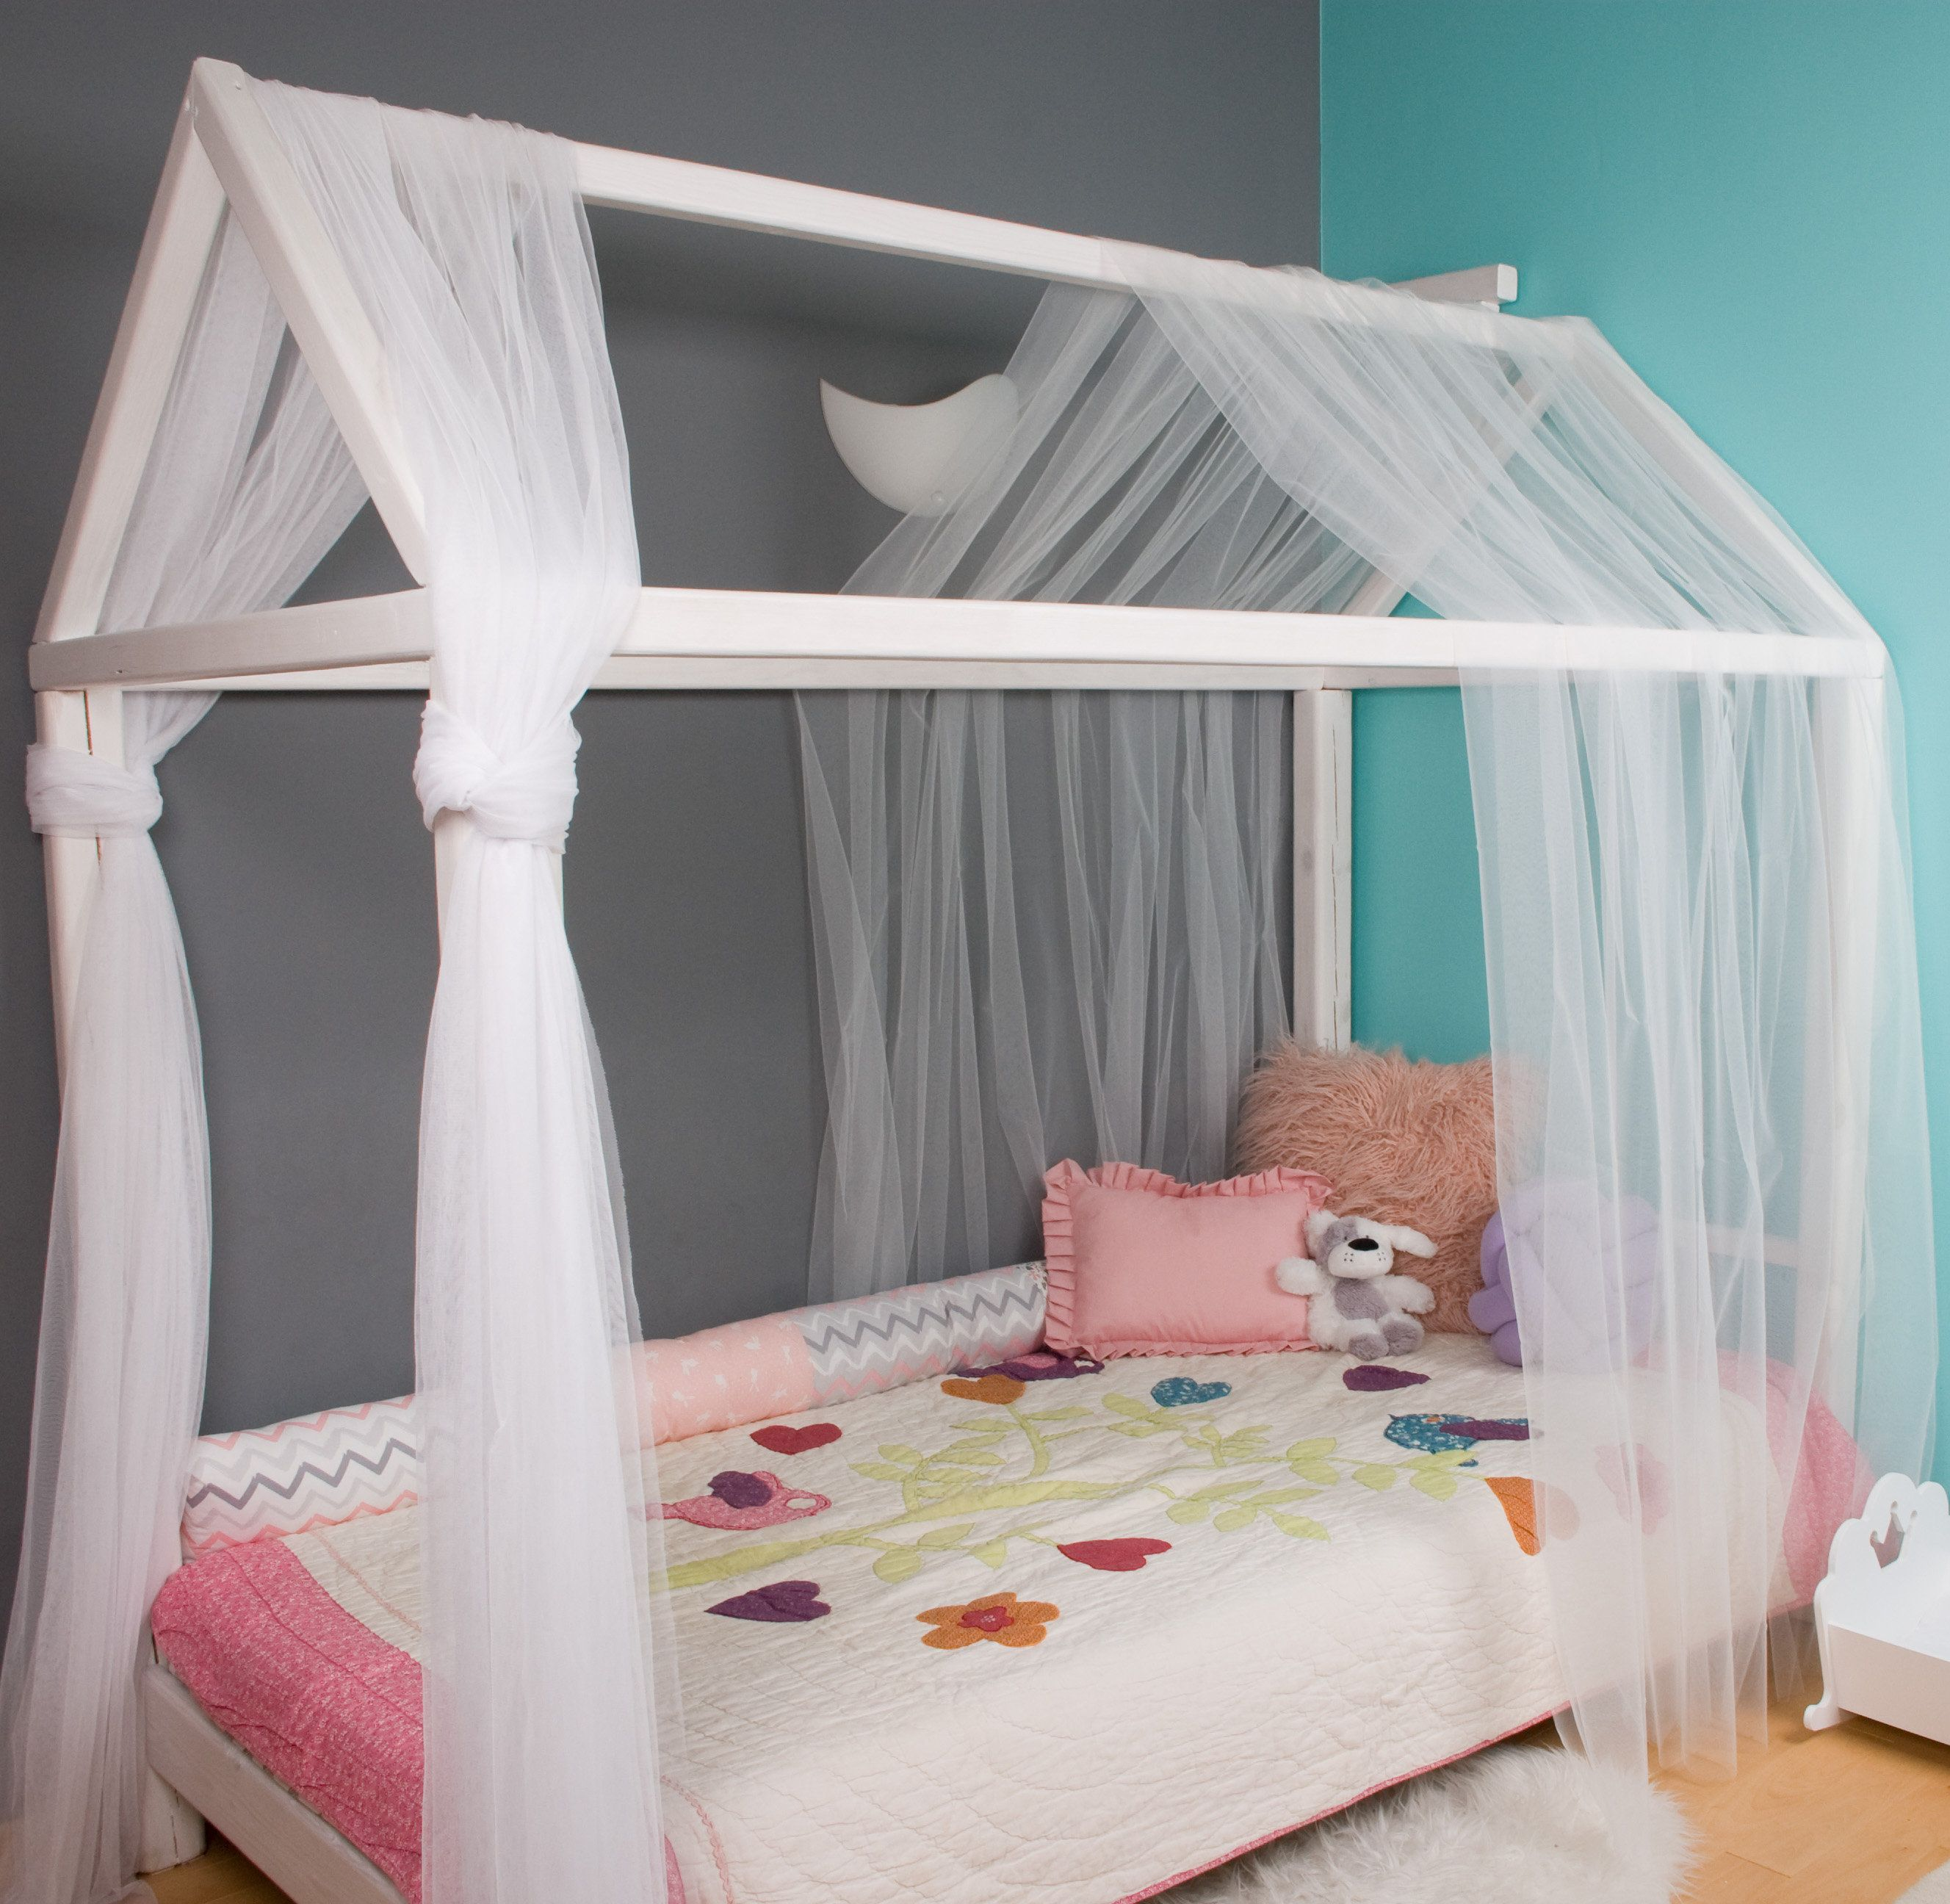 Montessori House Bed Canopy Baldachin Bed Canopy Play Floor Bed Canopy Hanging Canopy House Bed Curtain Decor